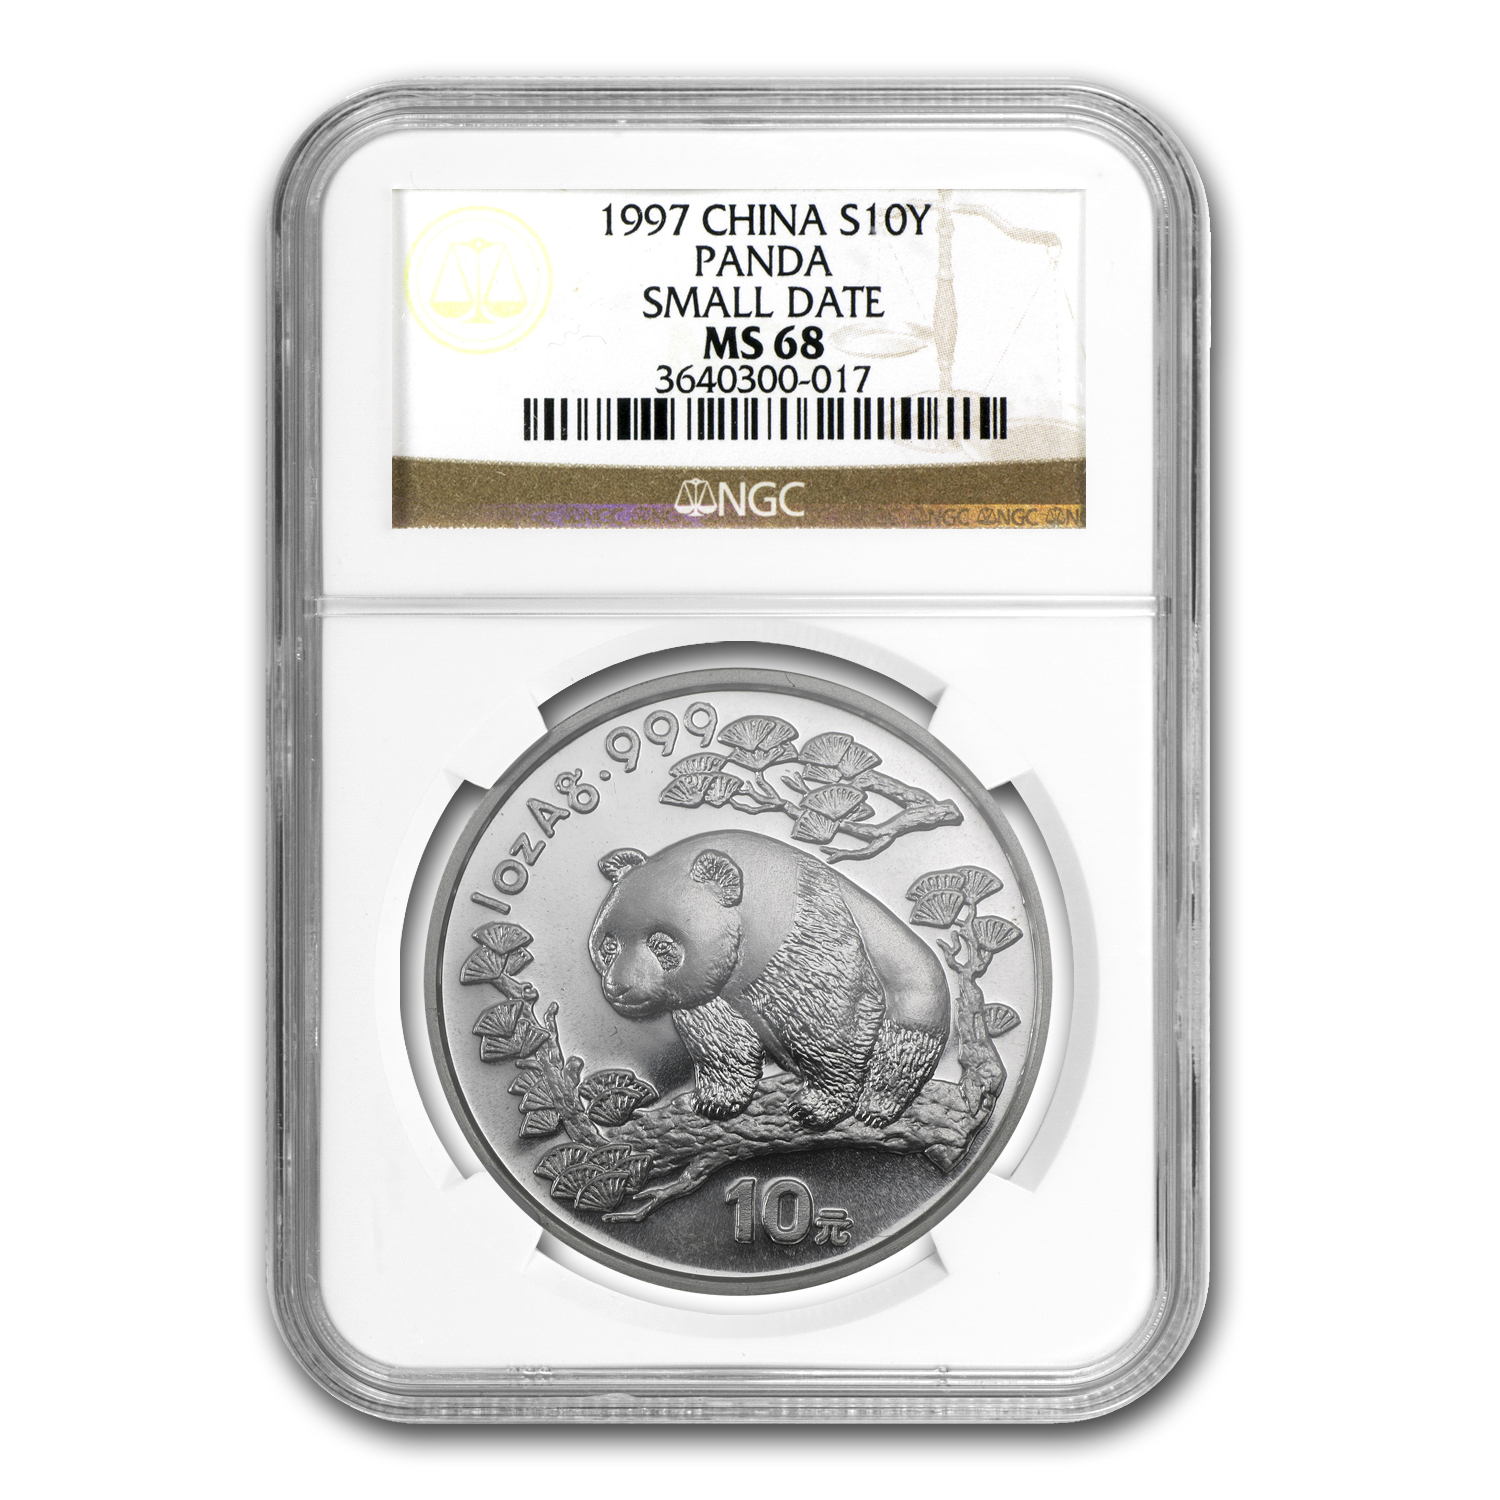 1997 China 1 oz Silver Panda MS-68 NGC (Small Date)